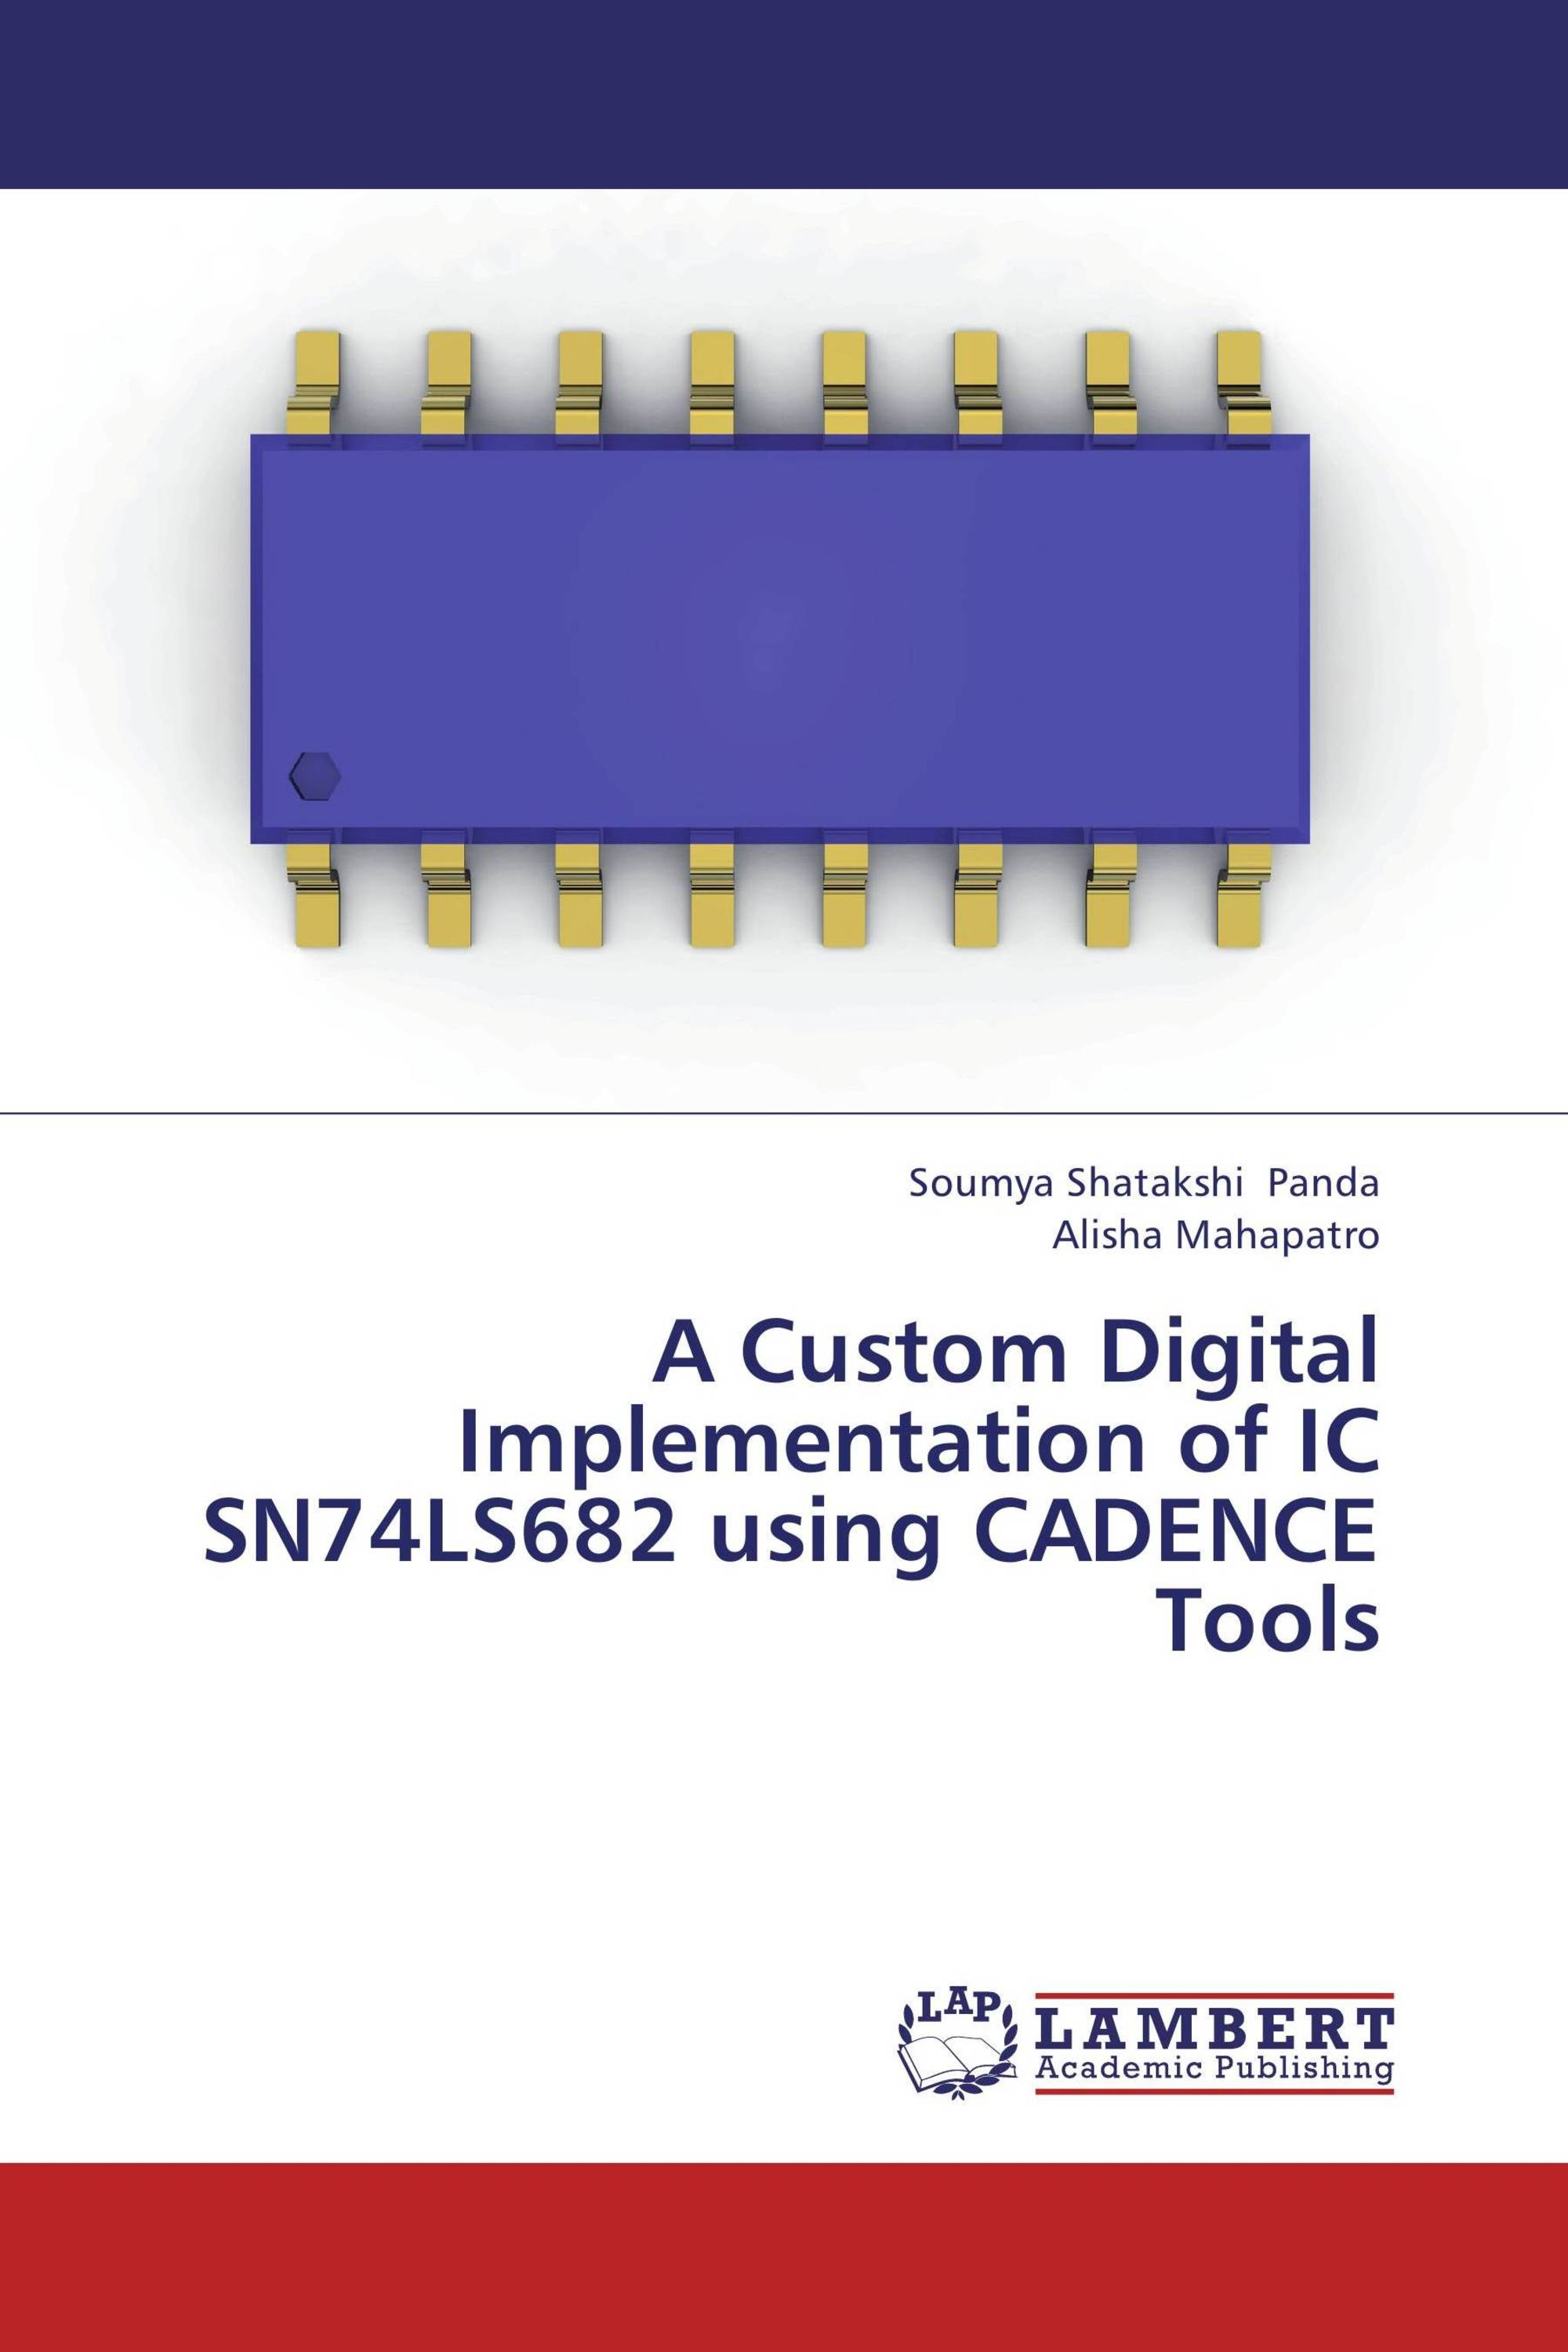 A Custom Digital Implementation of IC SN74LS682 using